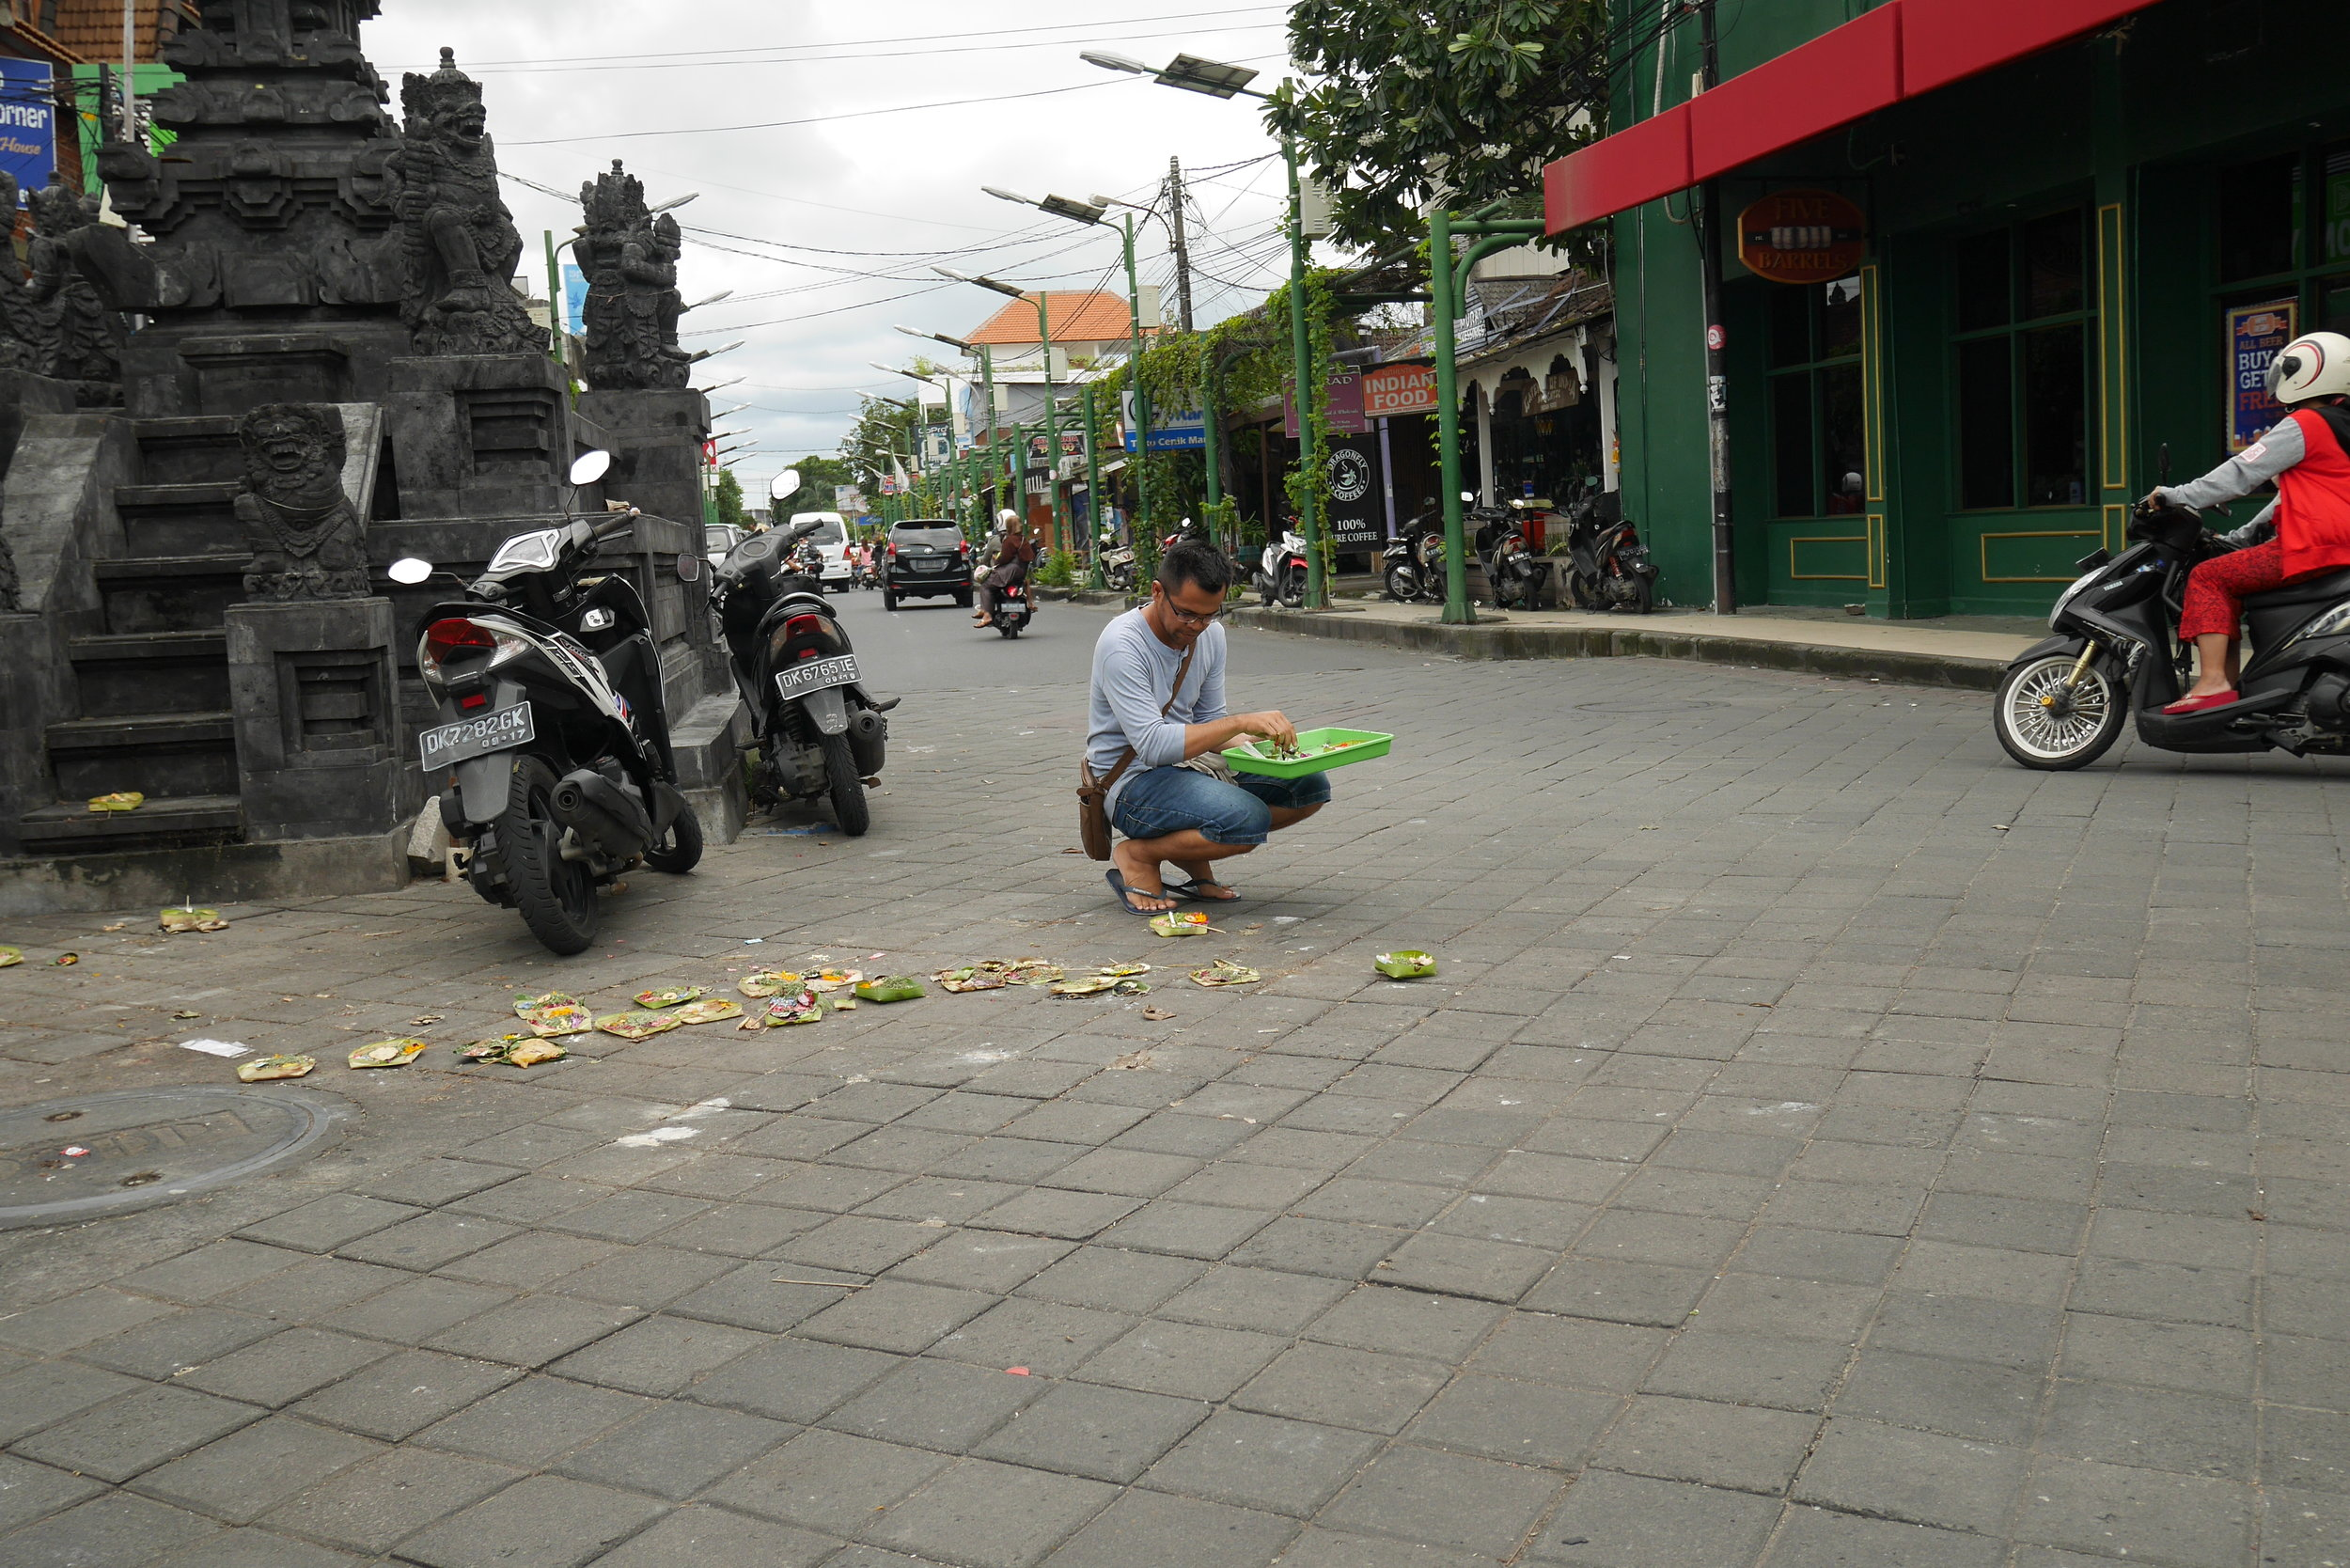 A man offers prayers on the road, oblivious to the bustling incoming traffic.